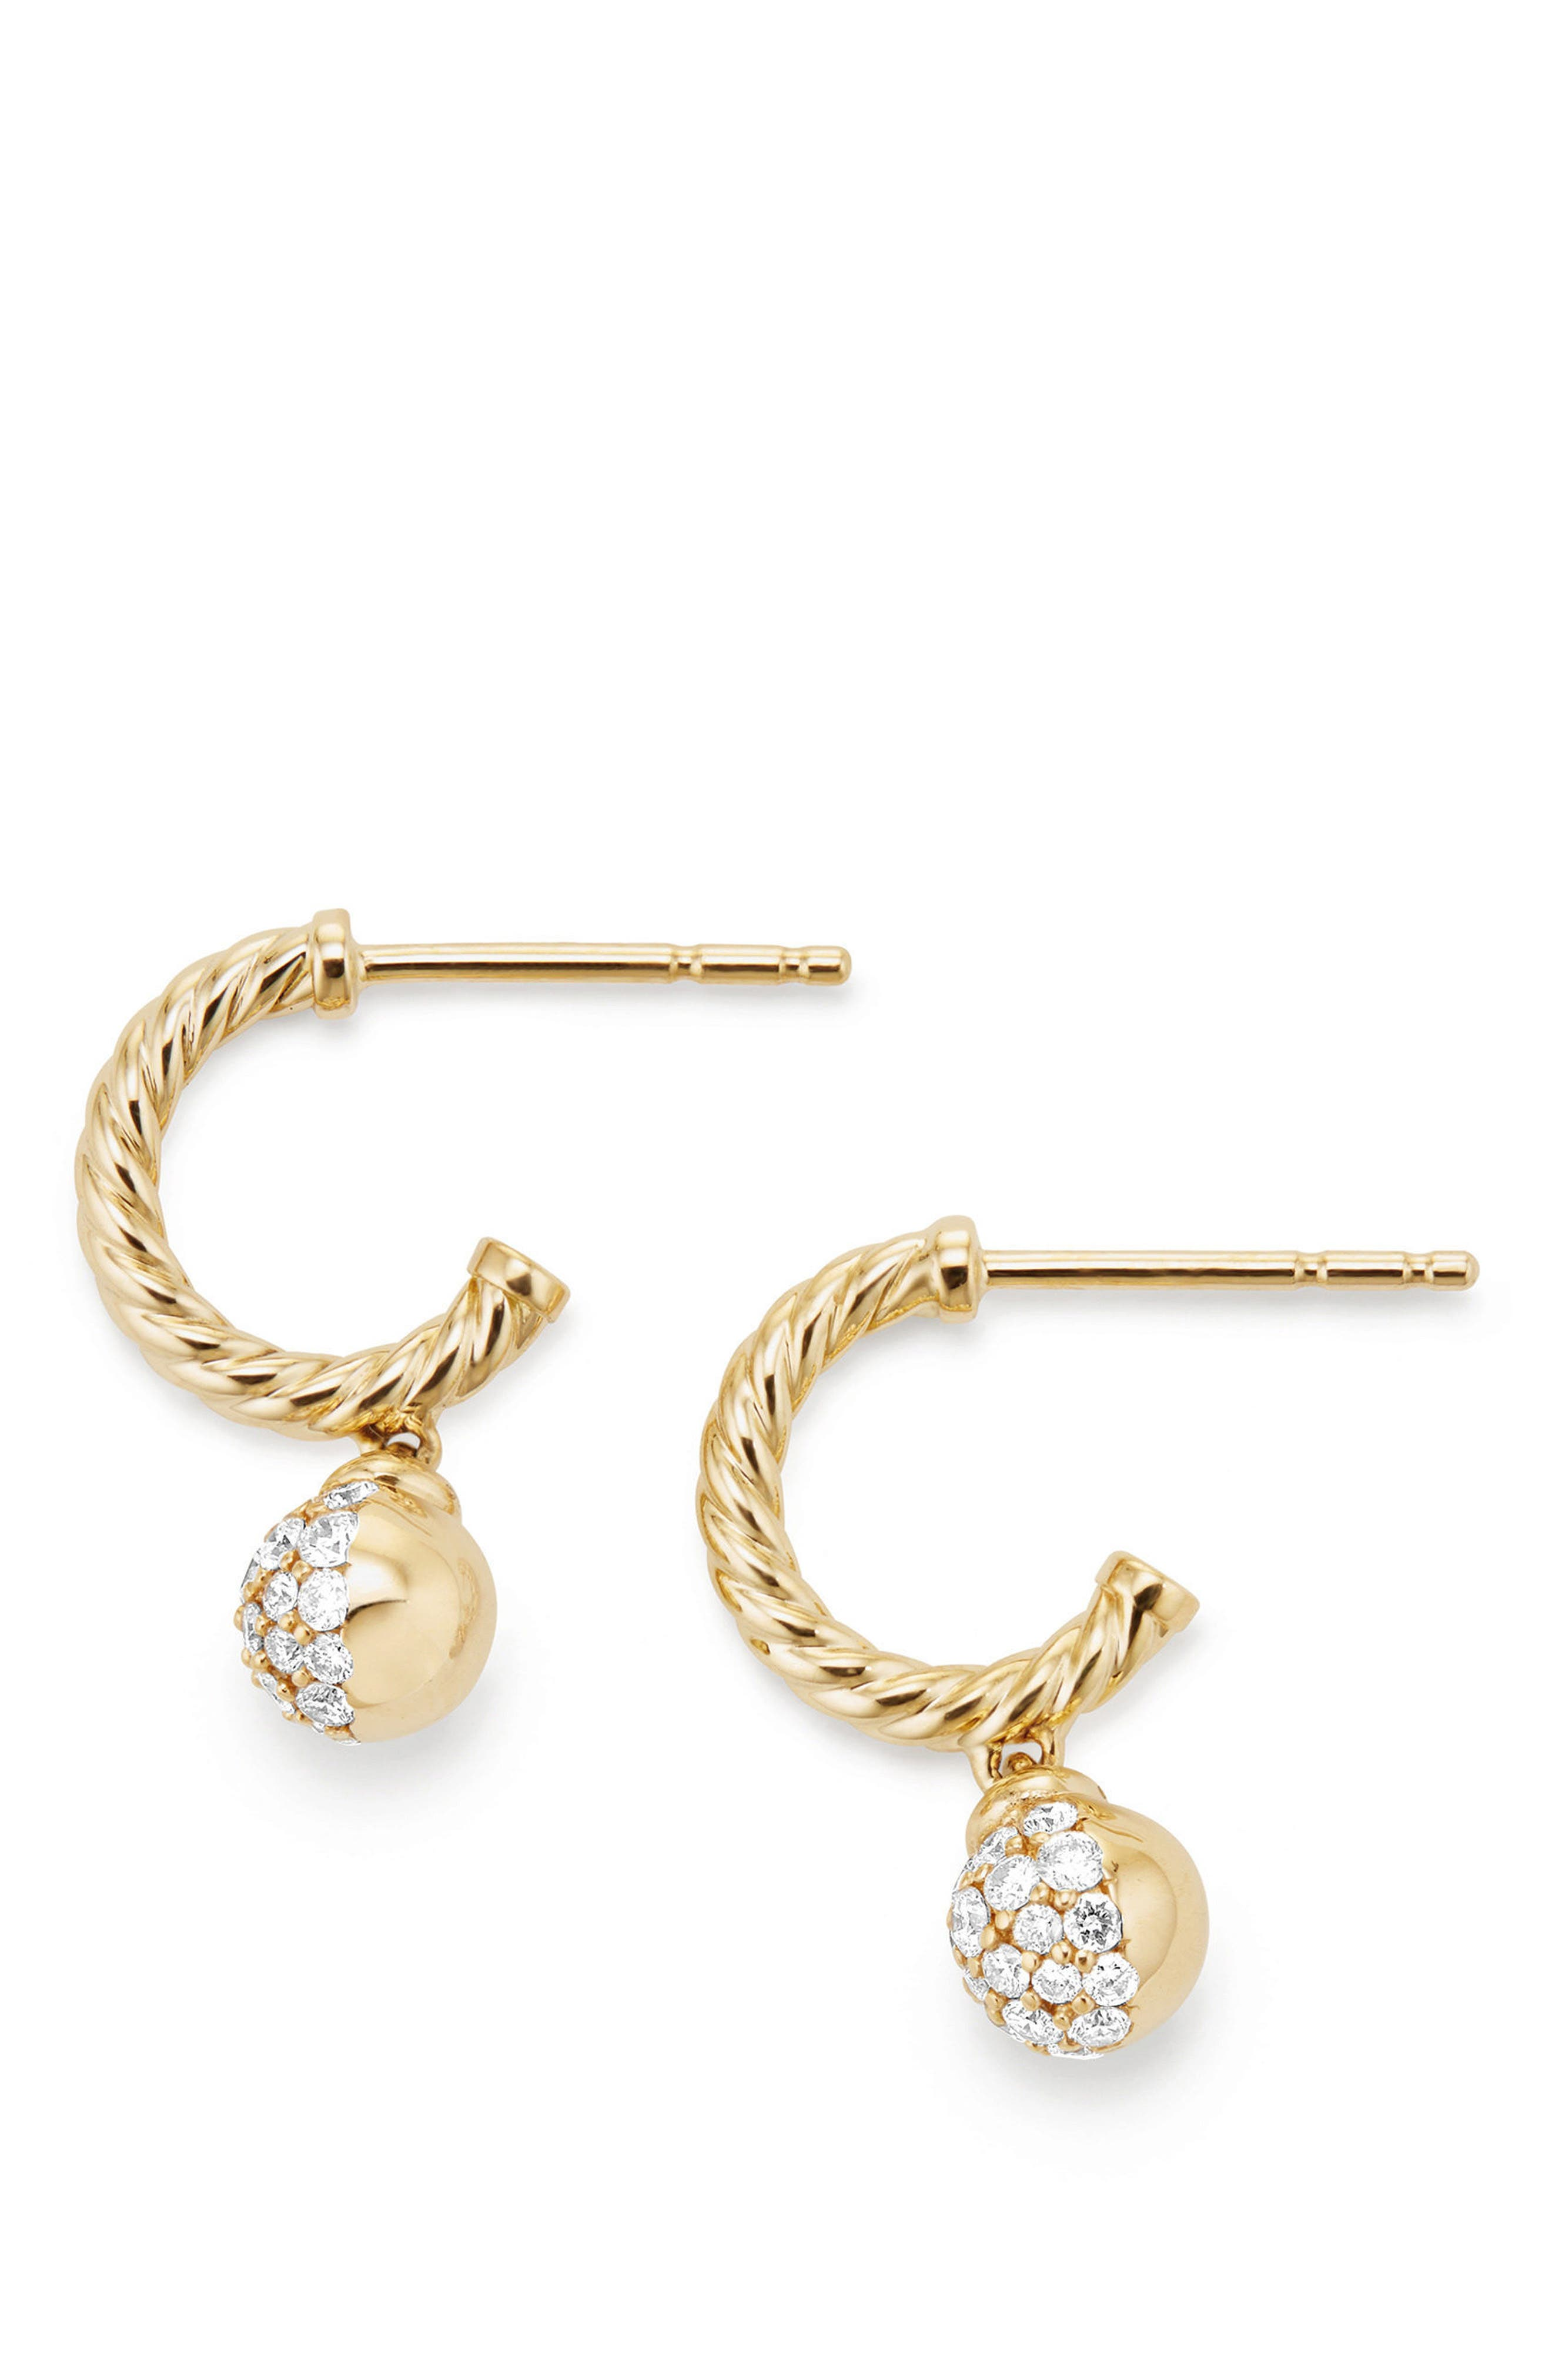 Petite Solari Hoop Pavé Earrings with Diamonds in 18K Gold,                         Main,                         color, Yellow Gold/ Diamond